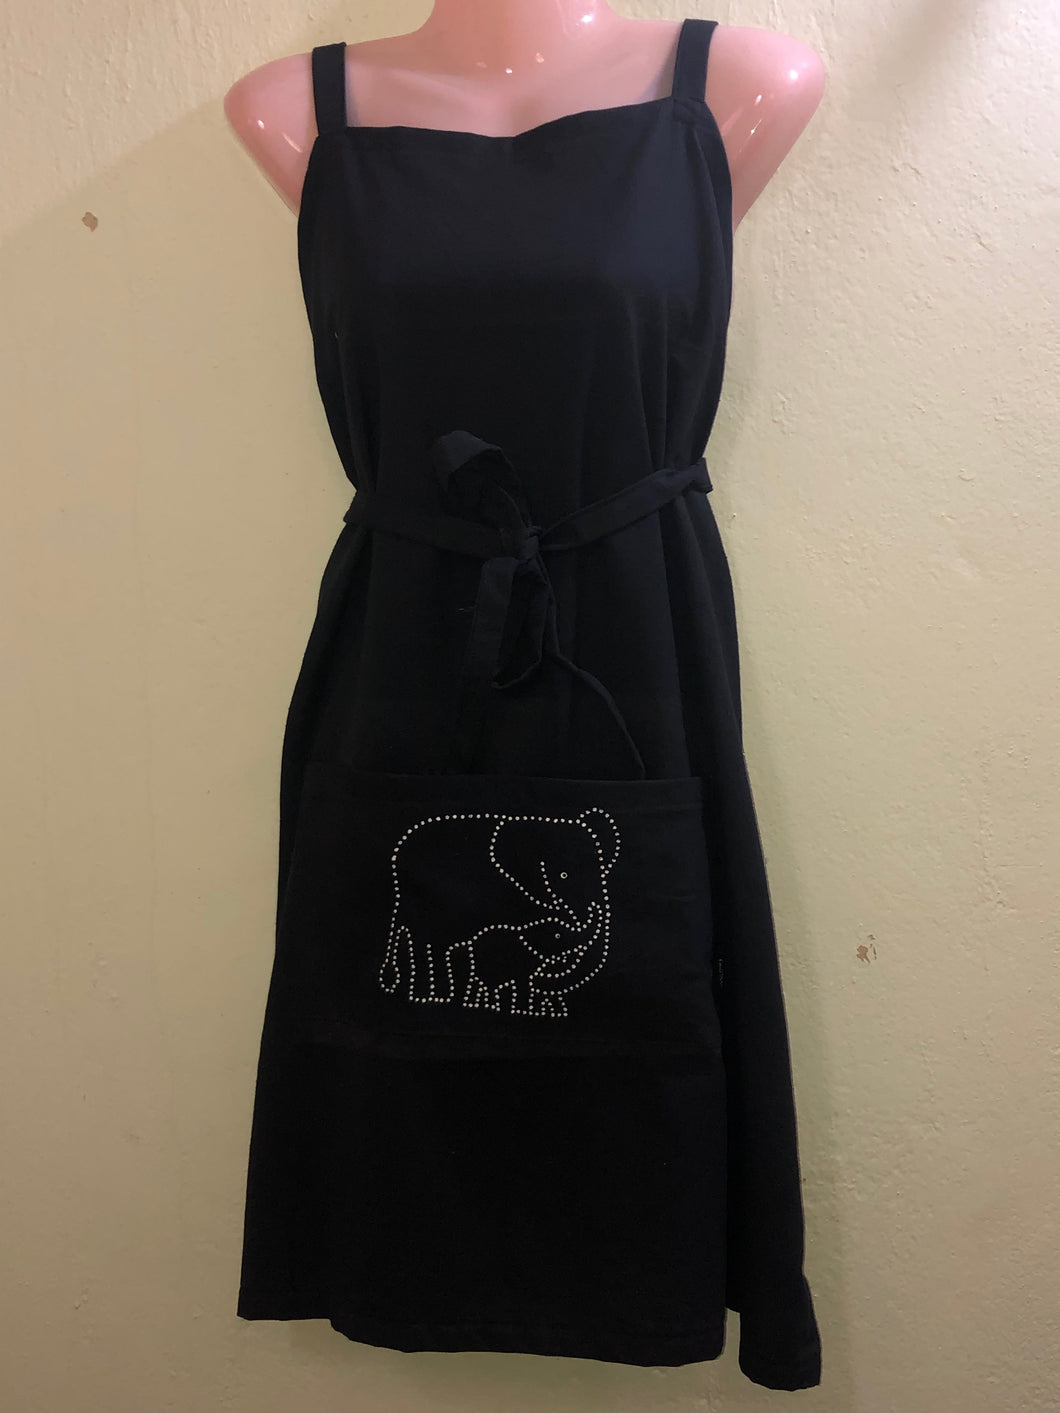 Mom and Baby Elephant Apron